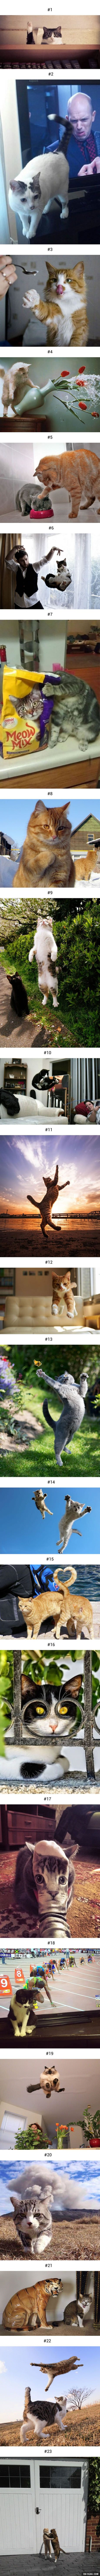 """23 Purrfectly-Timed Cat Photos For """"Hug Your Cat Day 2016"""""""